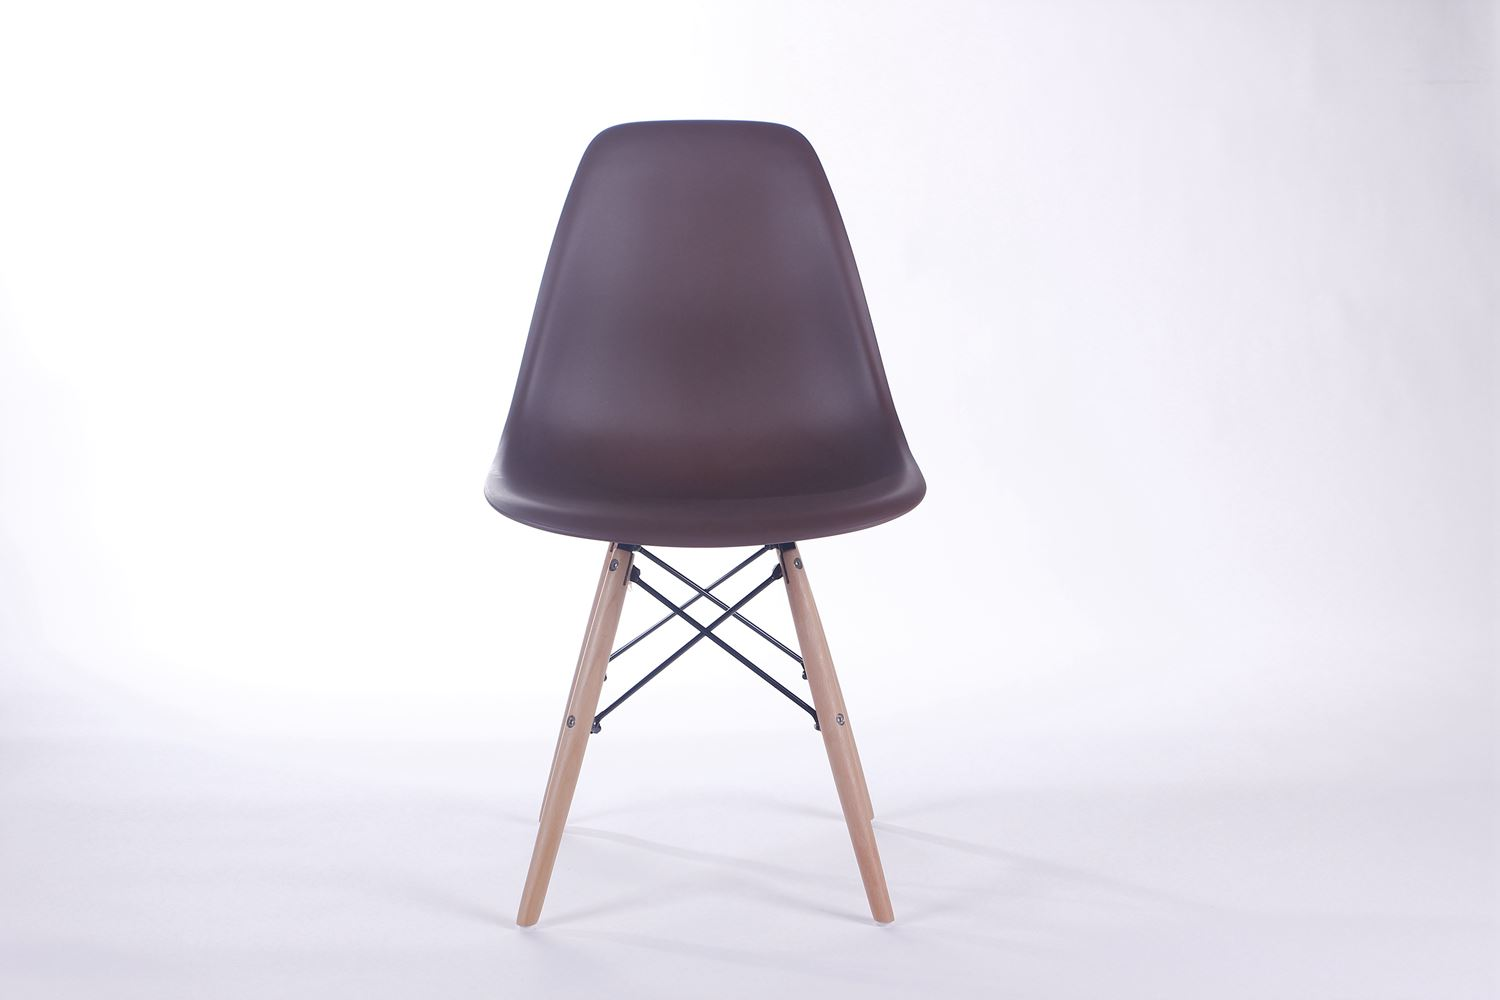 eiffel chair wood legs used oak table and chairs charles ray eames inspired dsw side dining room